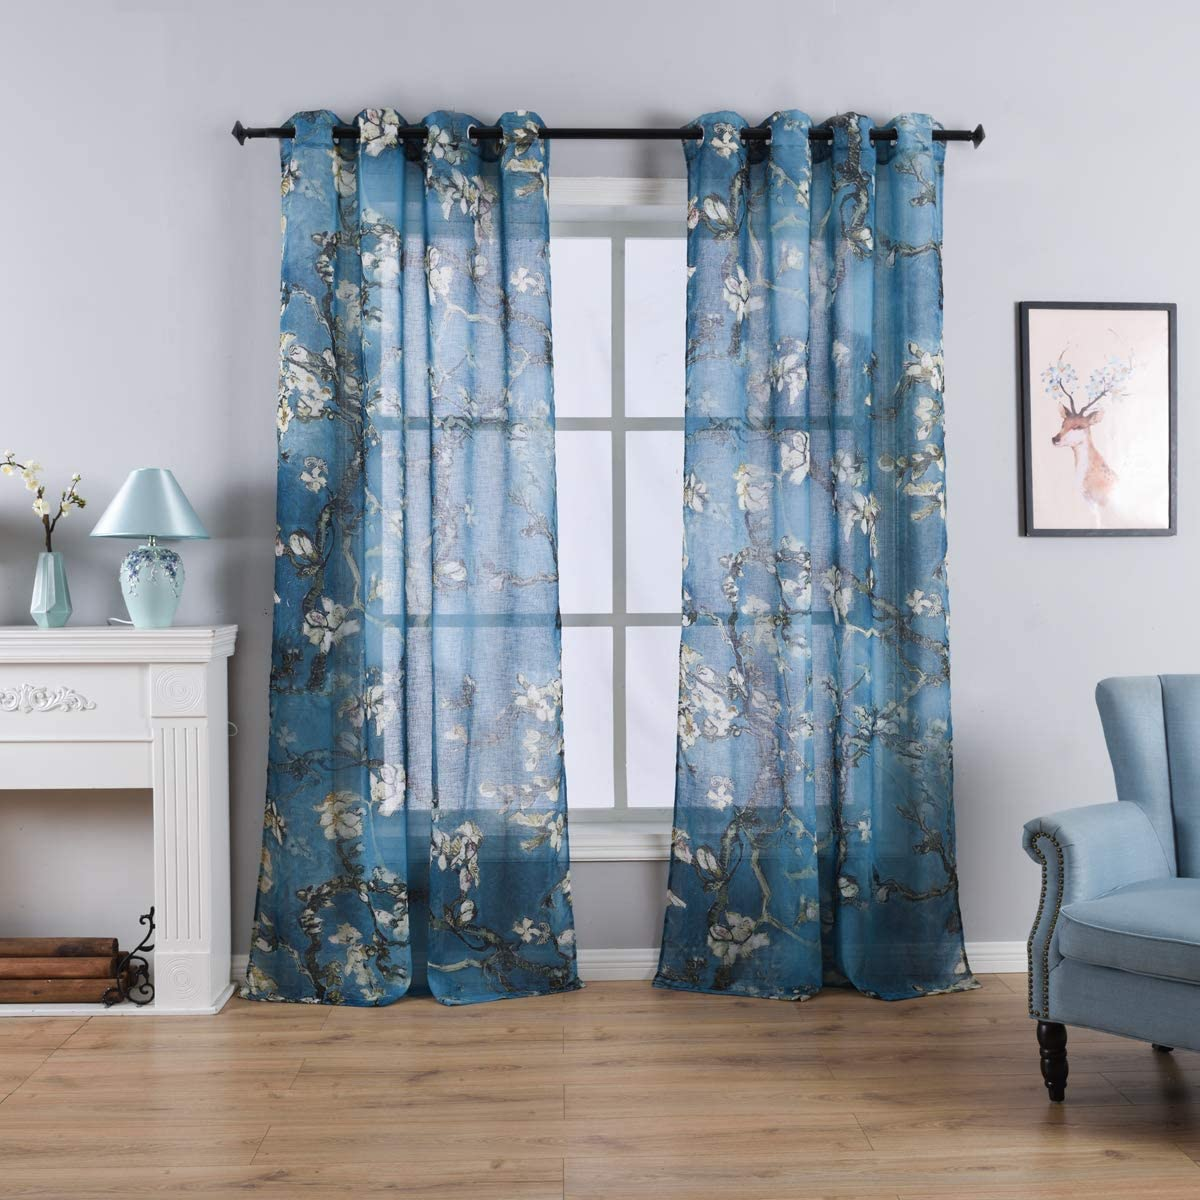 Taisier Home Chinese Style Plum Blossom Sheer Curtain Artistic Print Curtains 84 Inches Long for Living Room,Personalized Pattern Curtains 2 Panels Set Grommet Top Style